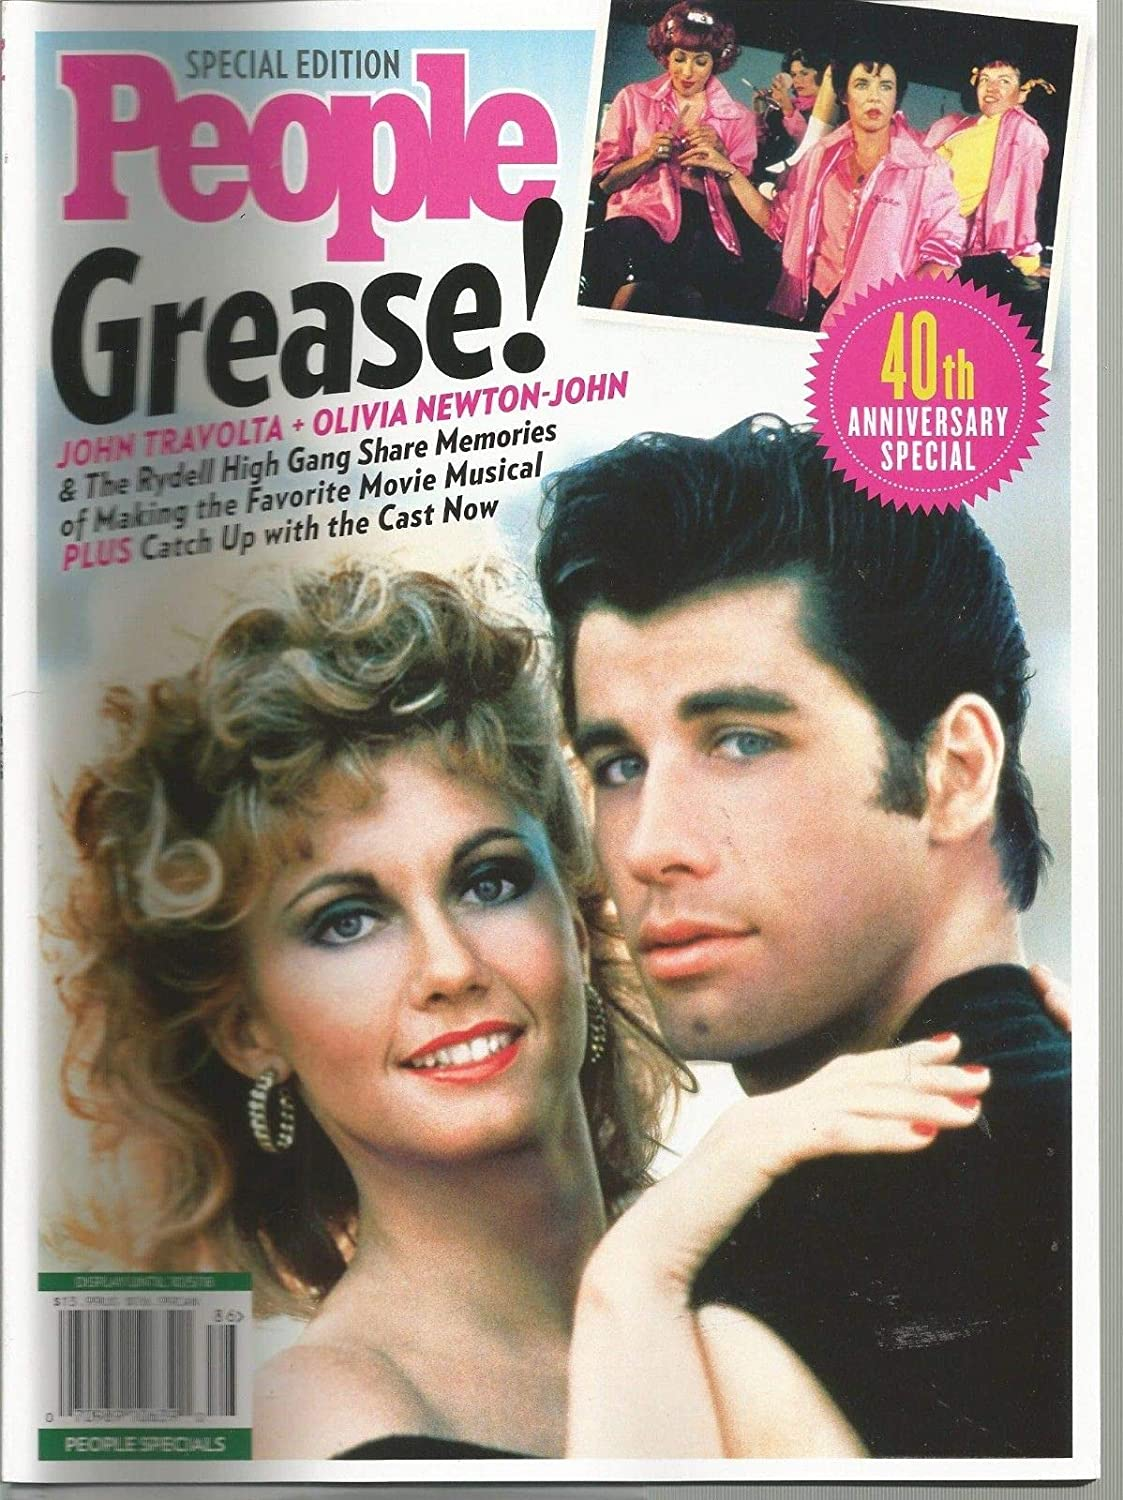 PEOPLE, SPECIAL EDITION, GREASE, 40TH ANNIVERSARY SPECIAL, 2018 ~ s3457